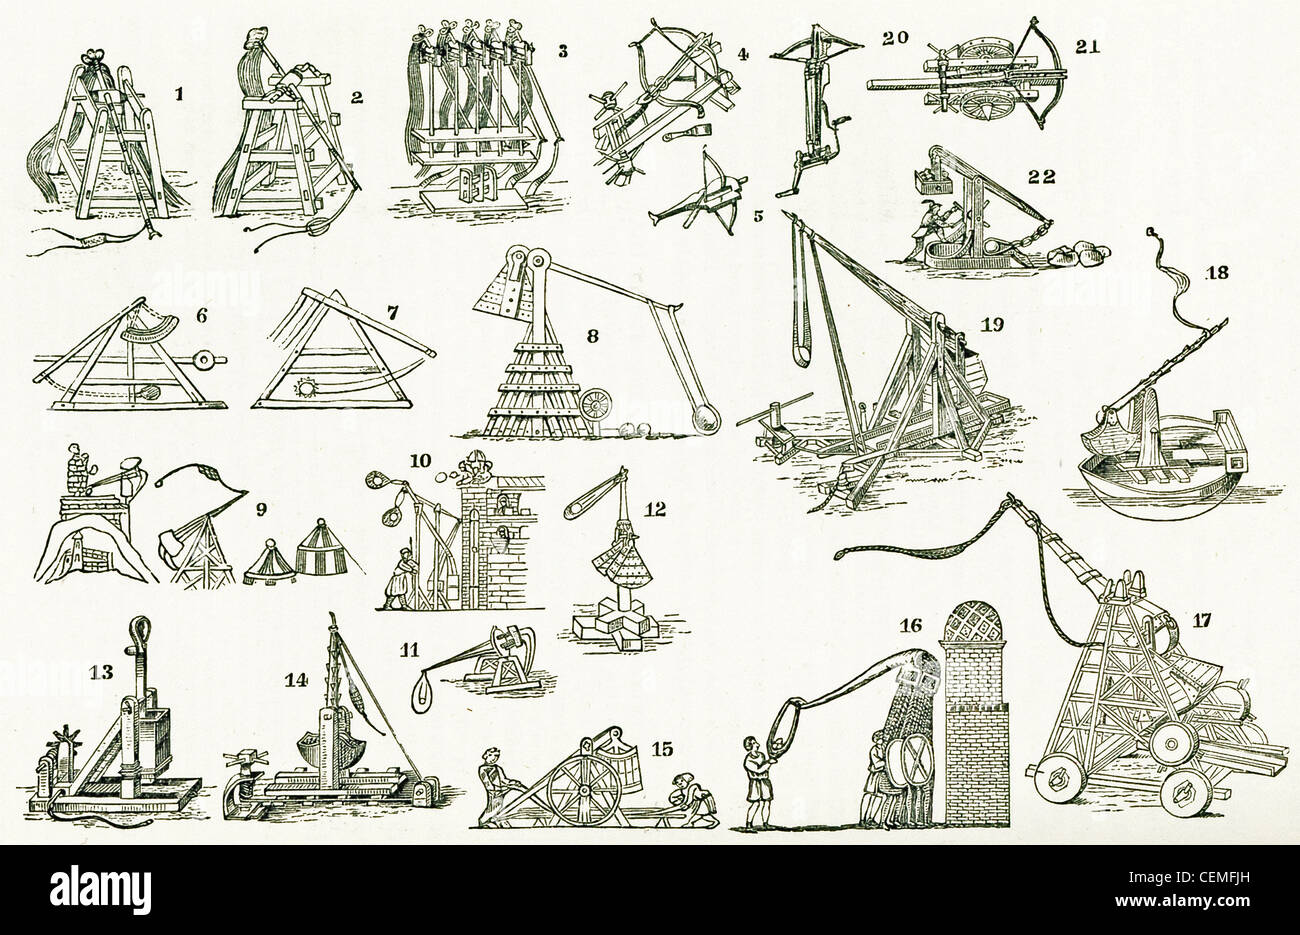 Depicted here are medieval artillery engines: #1-5 are Chinese; #6-8 are Saracenic; and the rest are Frank. - Stock Image